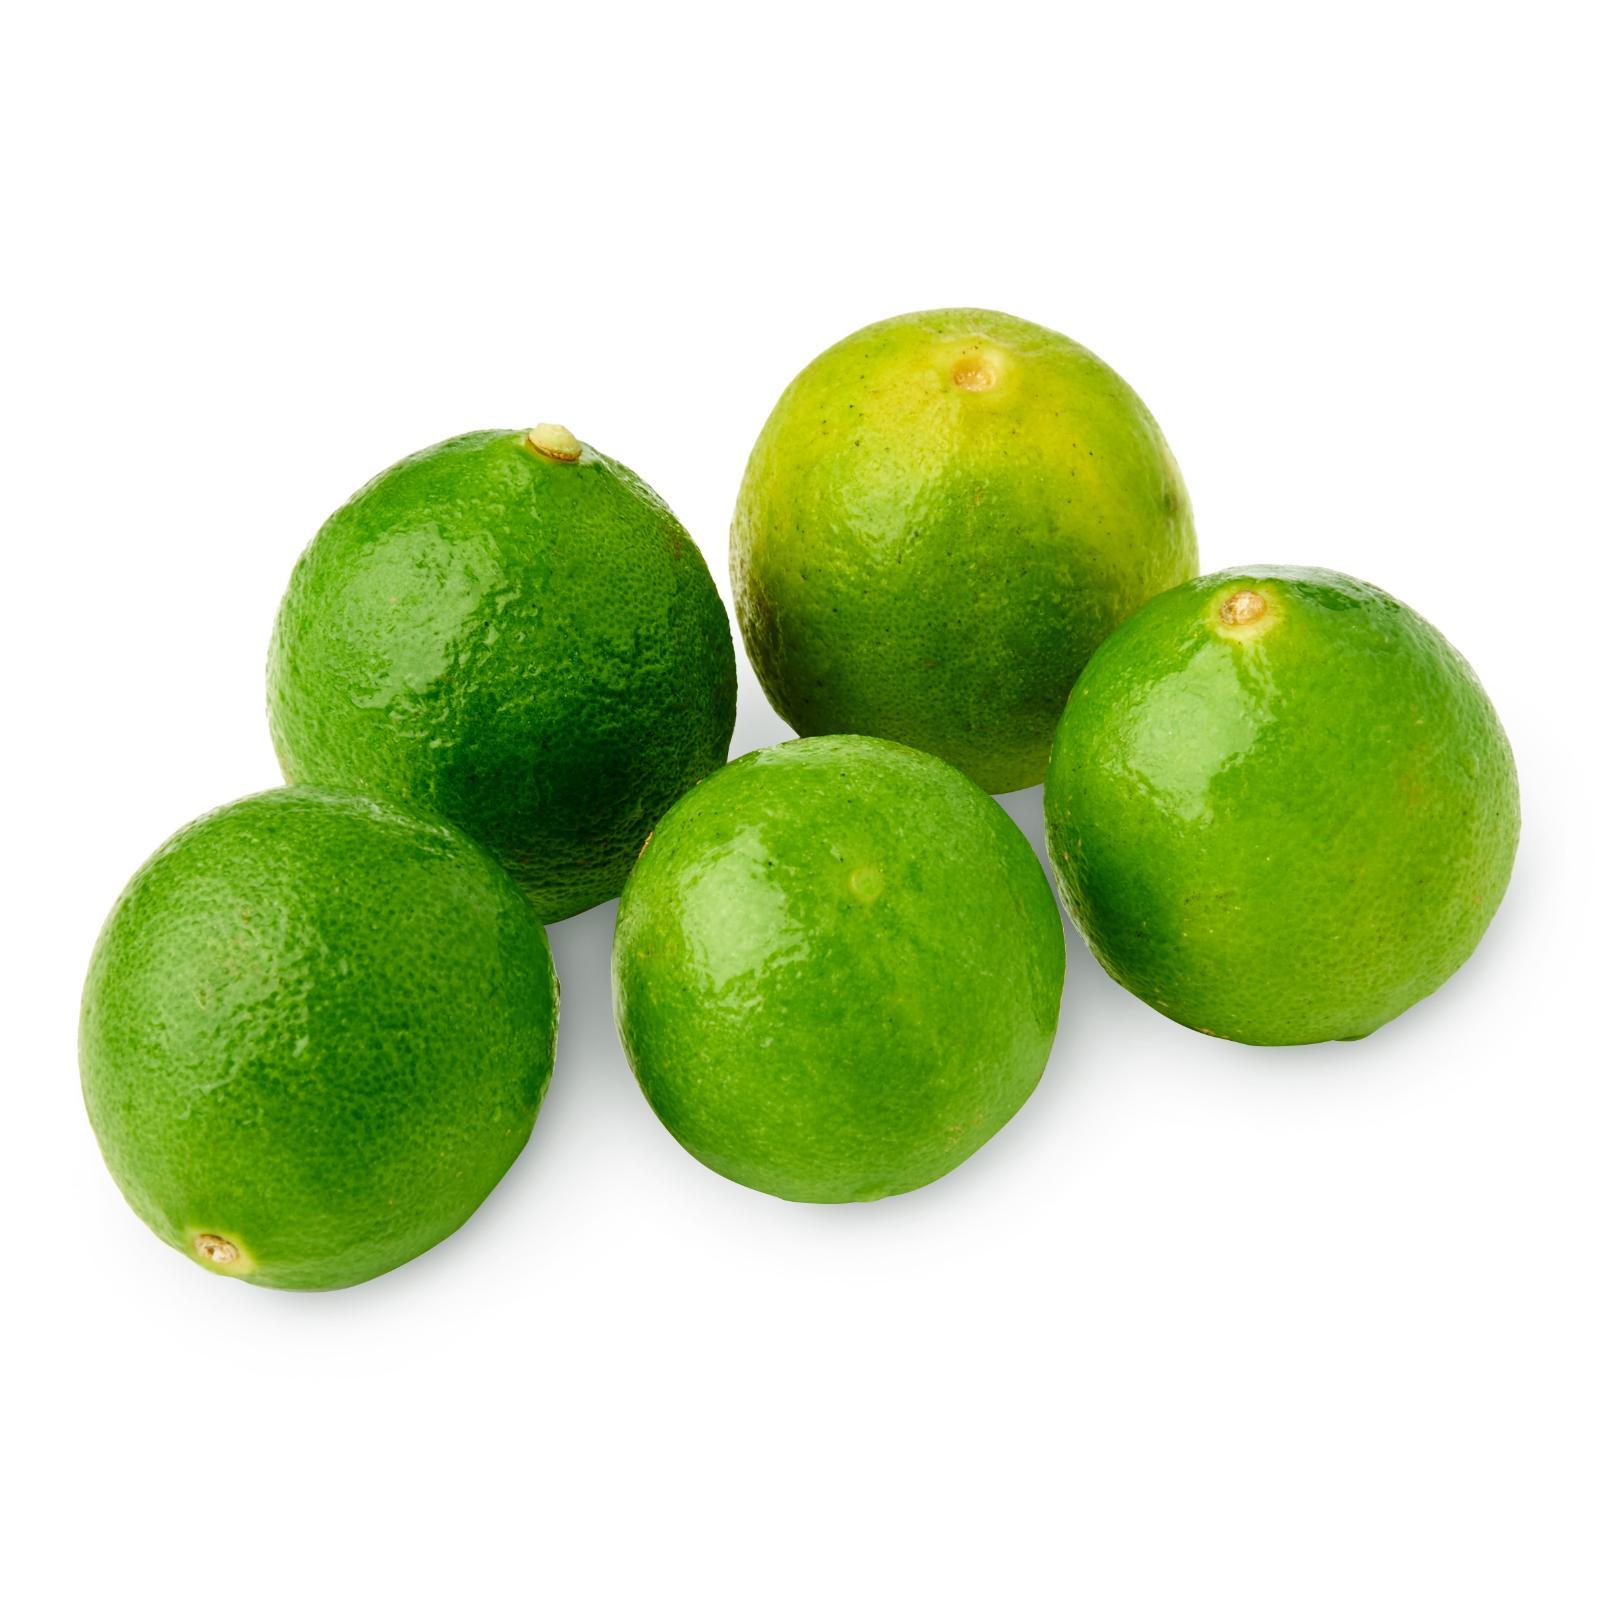 Yuvvo Large Limes By Redmart.